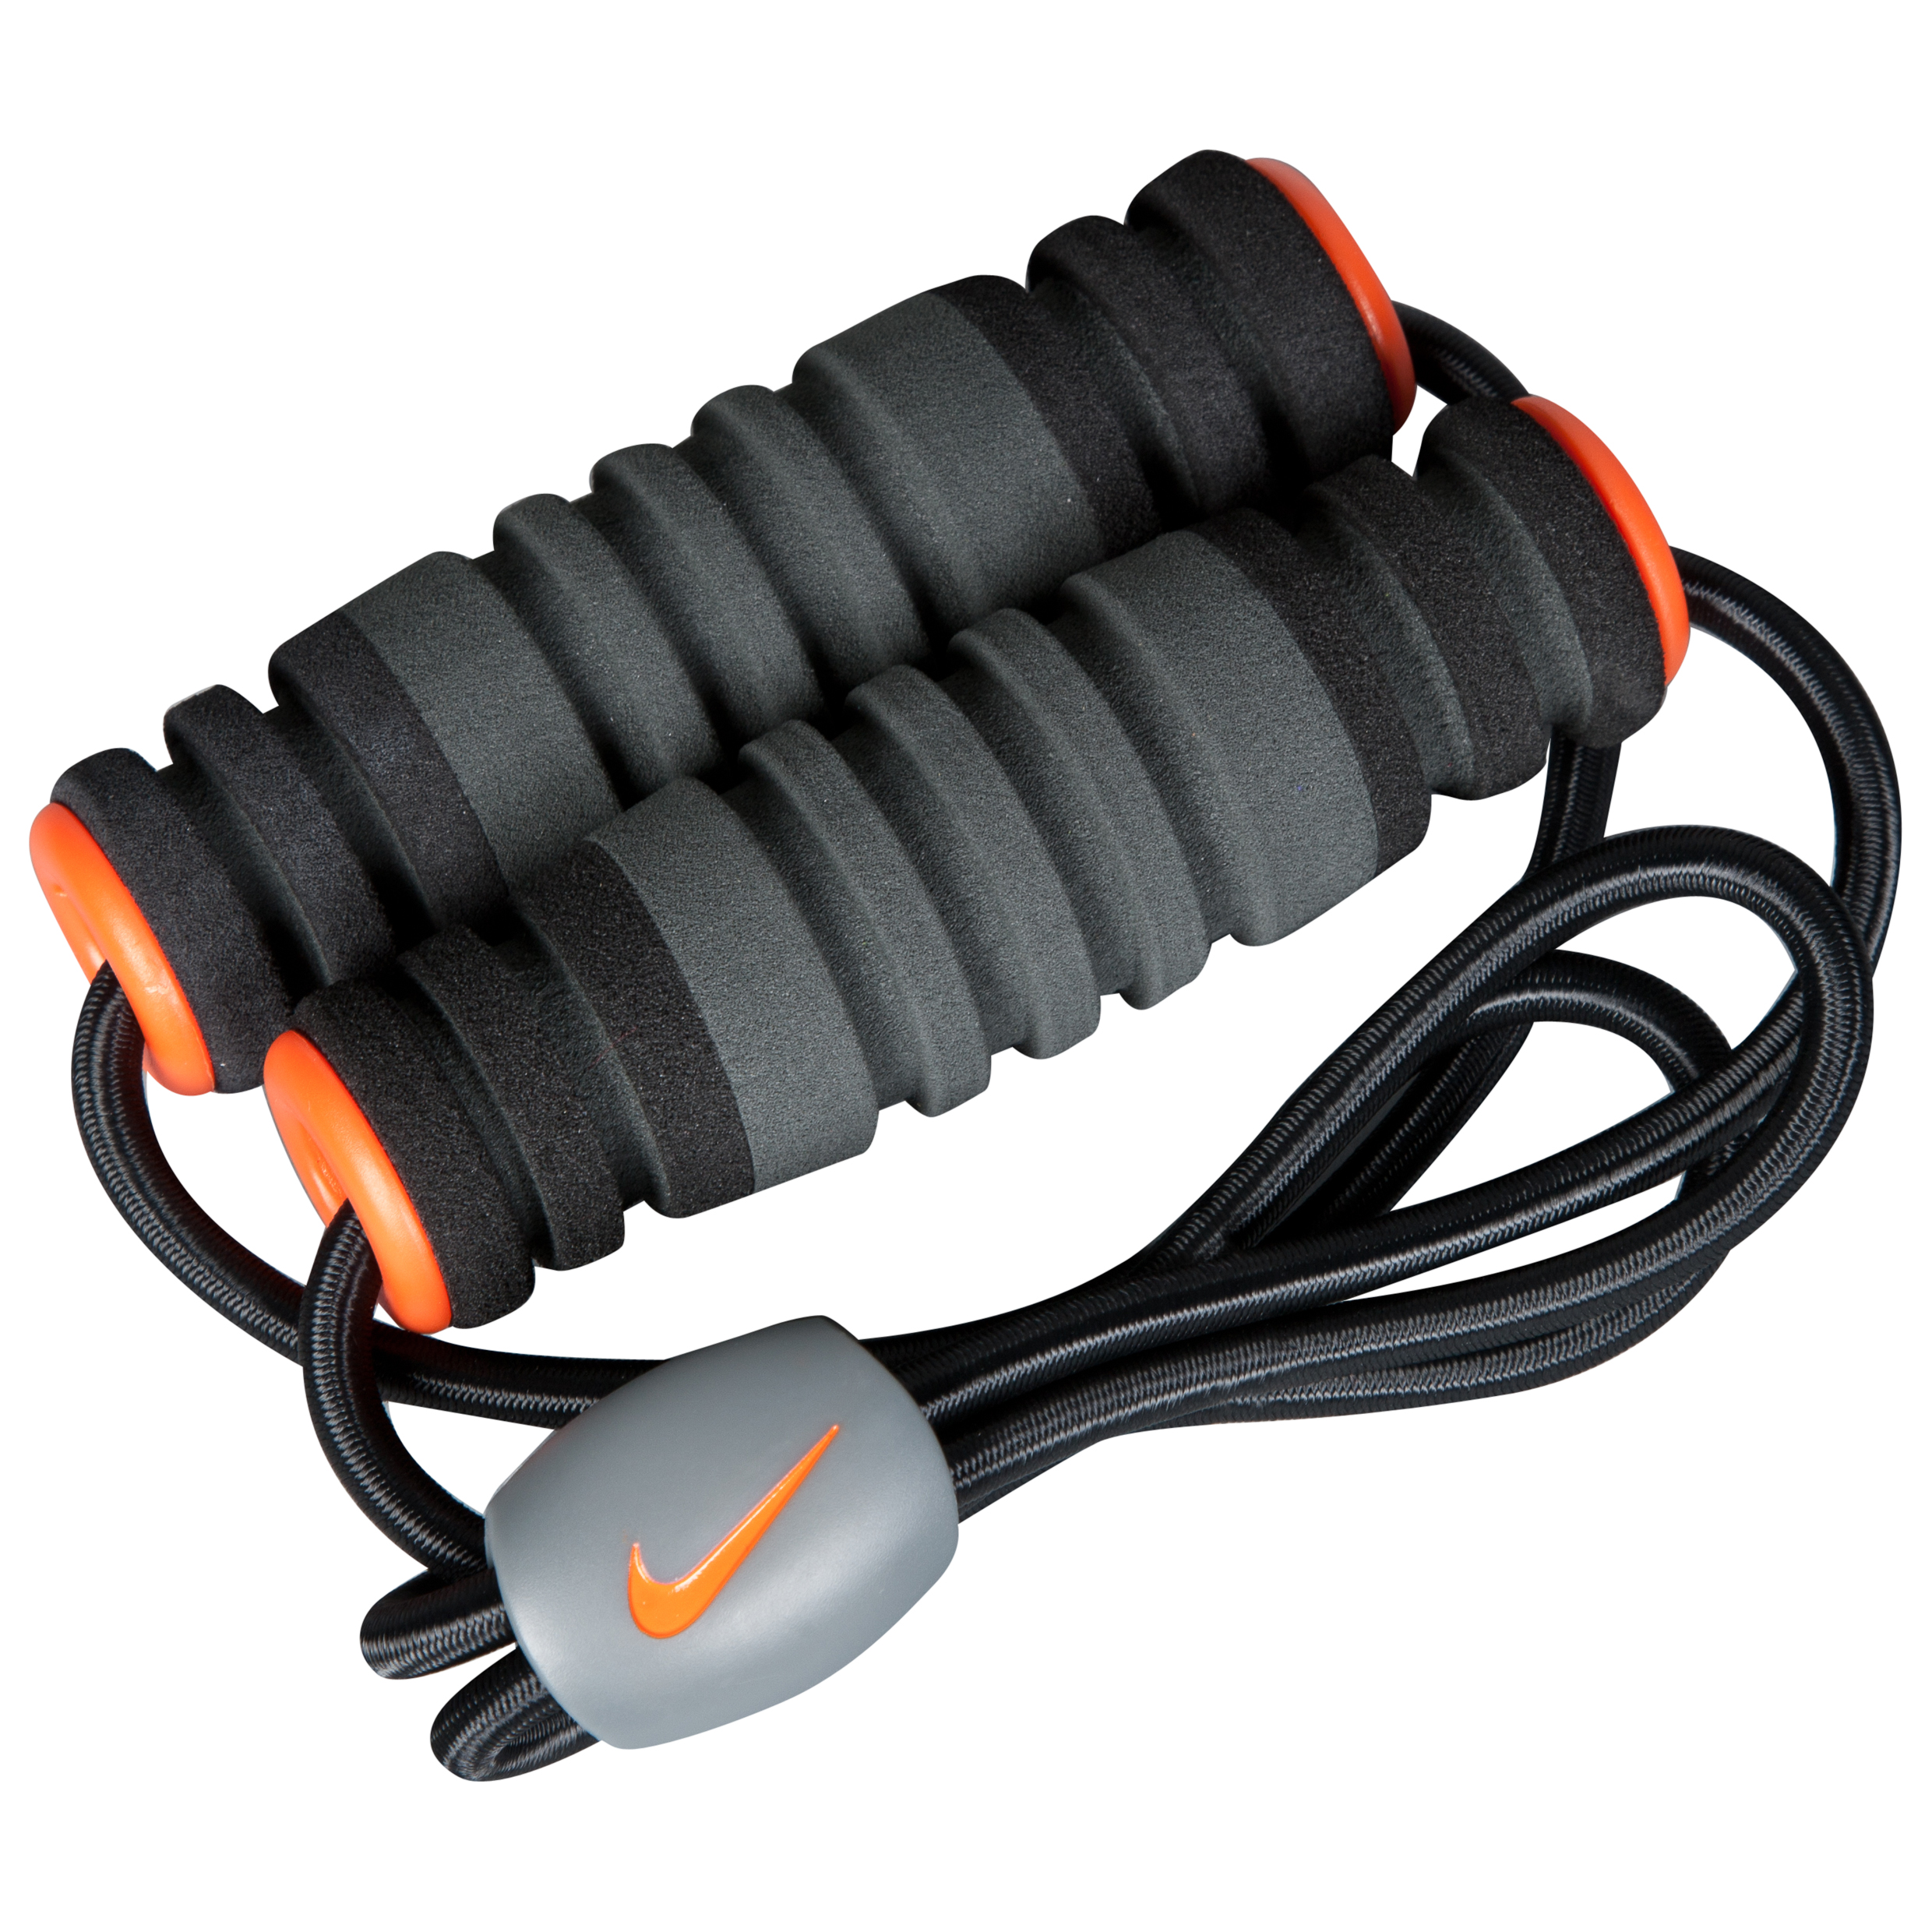 Nike Figure-8 Medium Resistance Band - Black/Orange/Anthracite